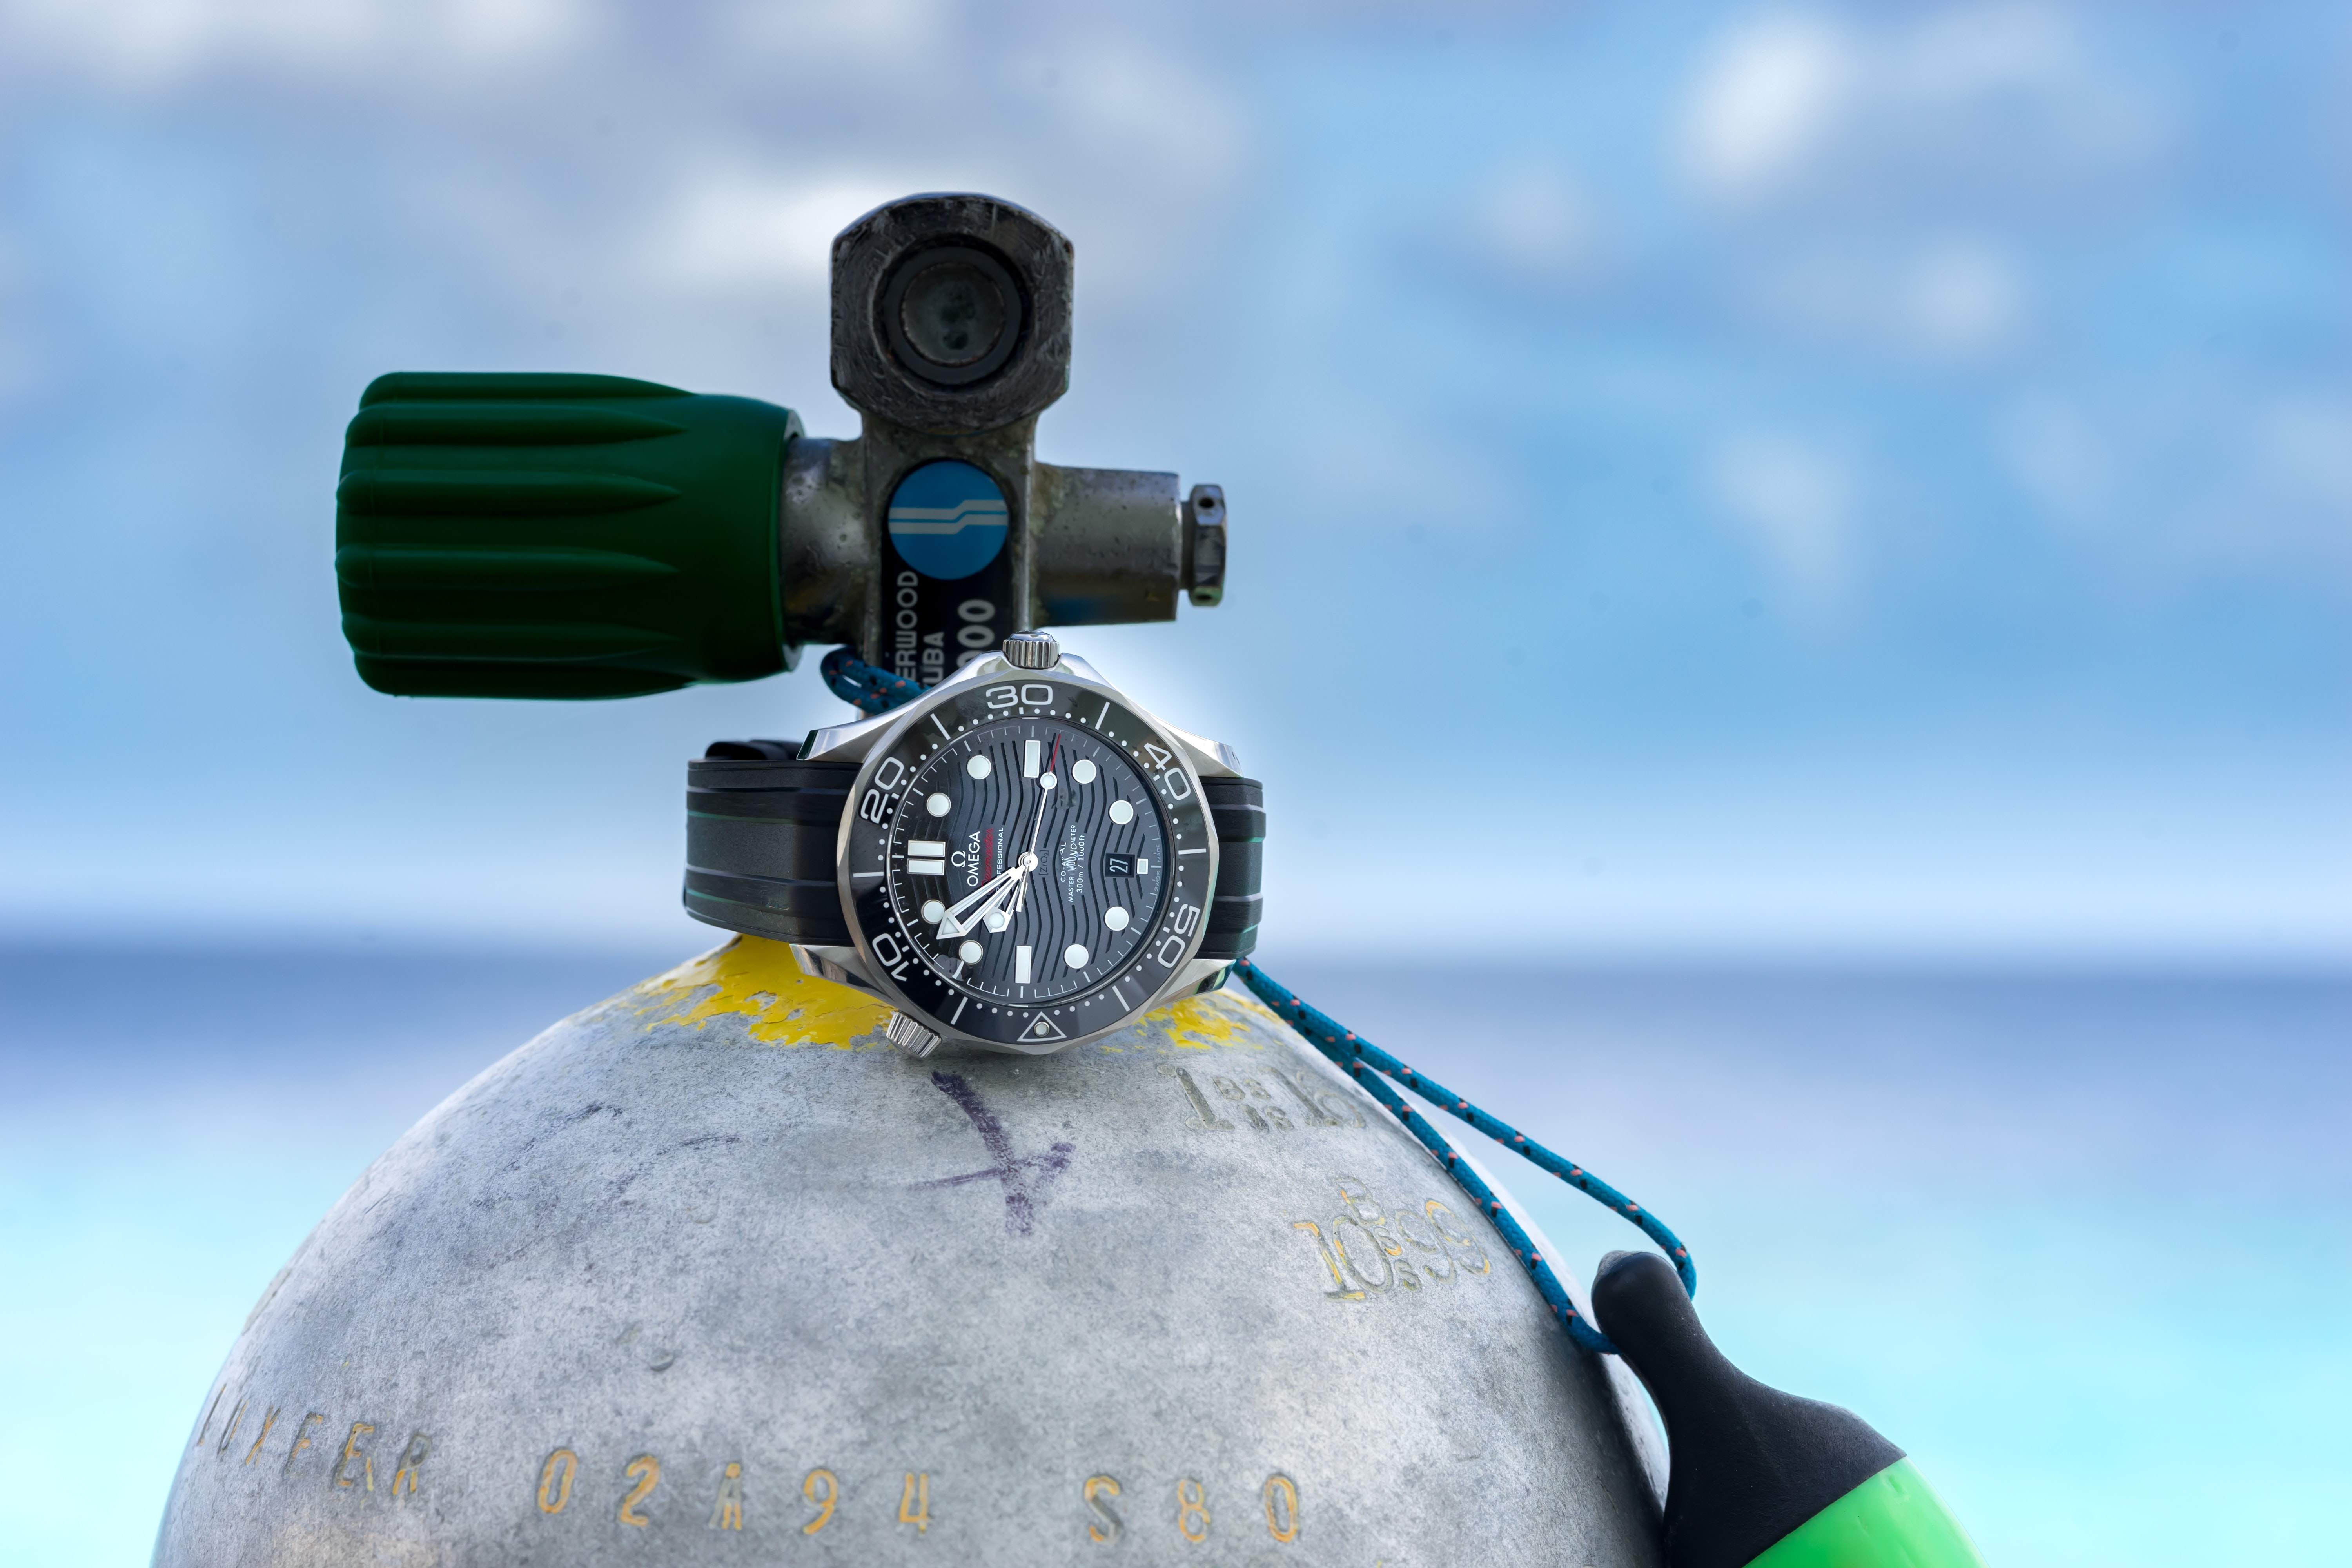 In-Depth: Diving With The Omega Seamaster Professional 300M SM300 pro 9